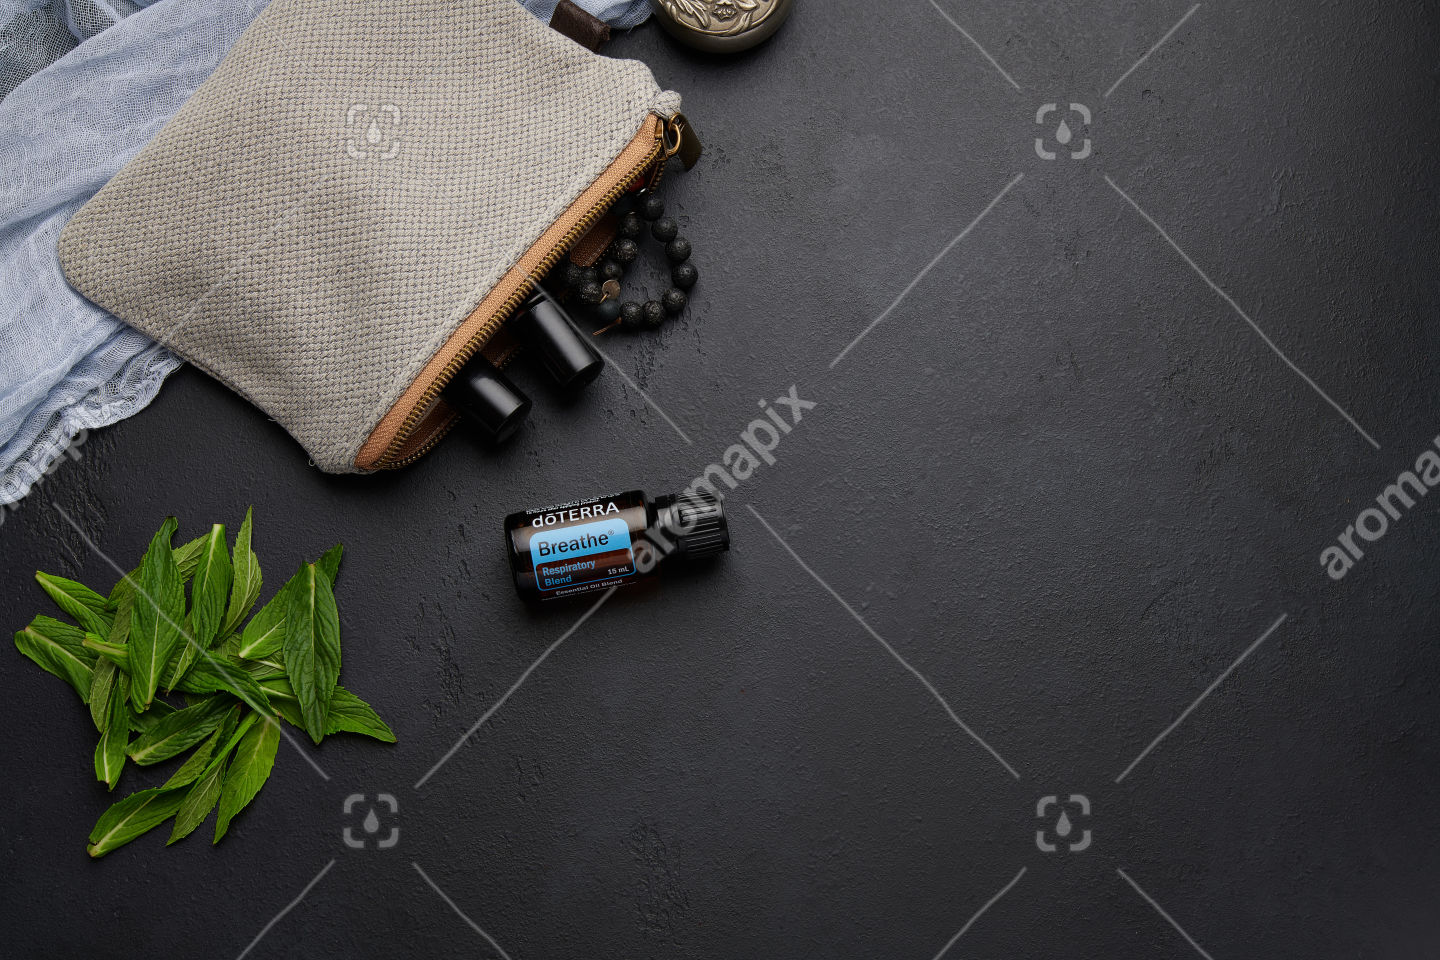 doTERRA Breathe with mint leaves on black